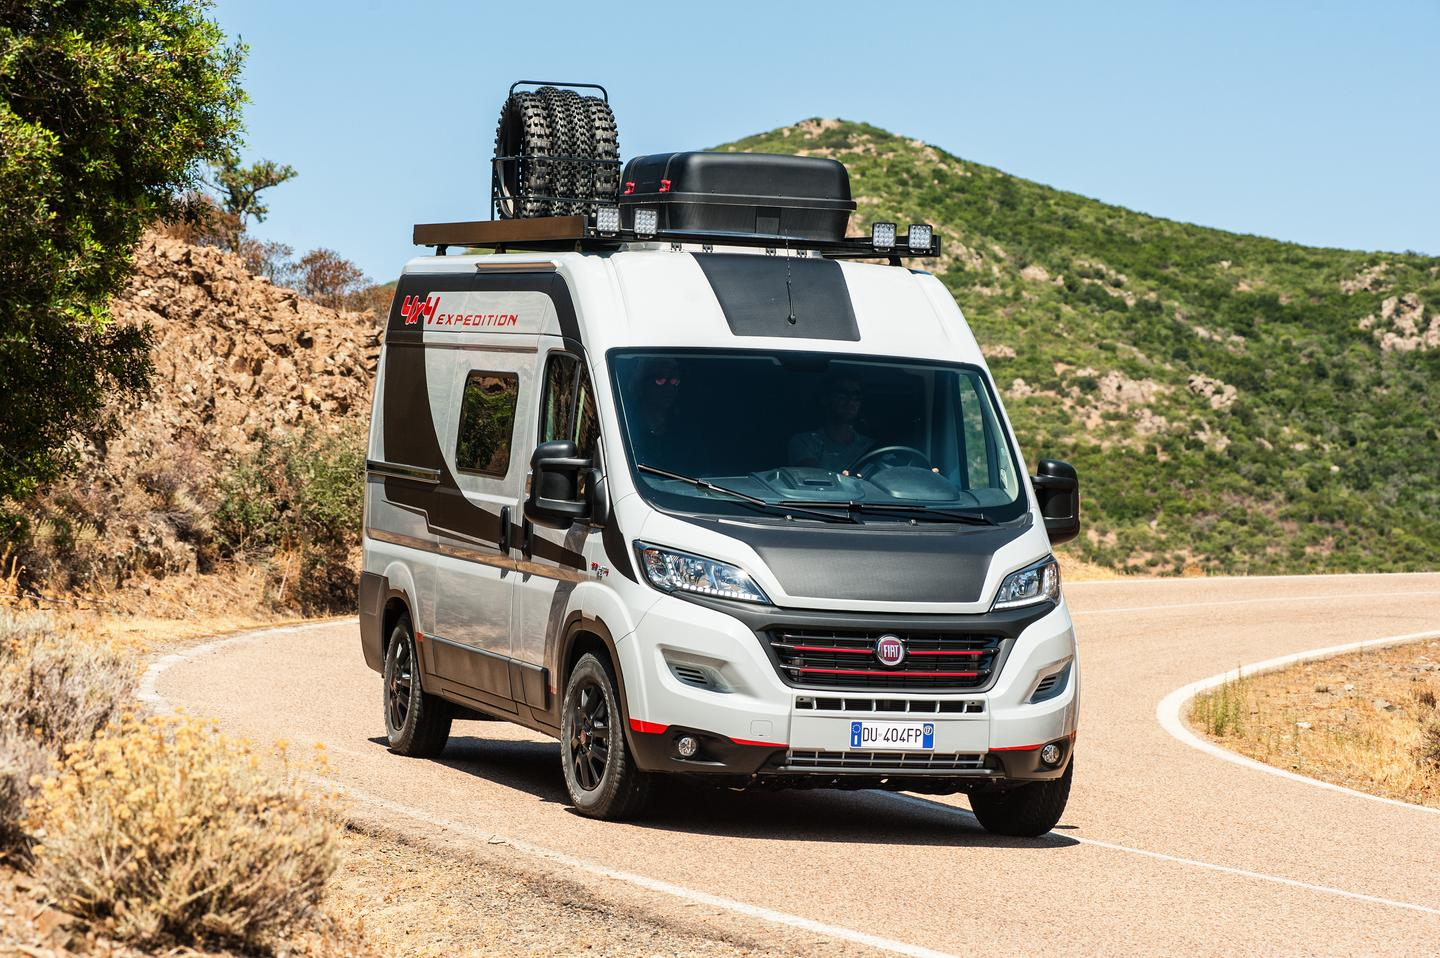 Fiat updates the Ducato 4x4 Expedition show van to celebrate the launch of the production 4x4